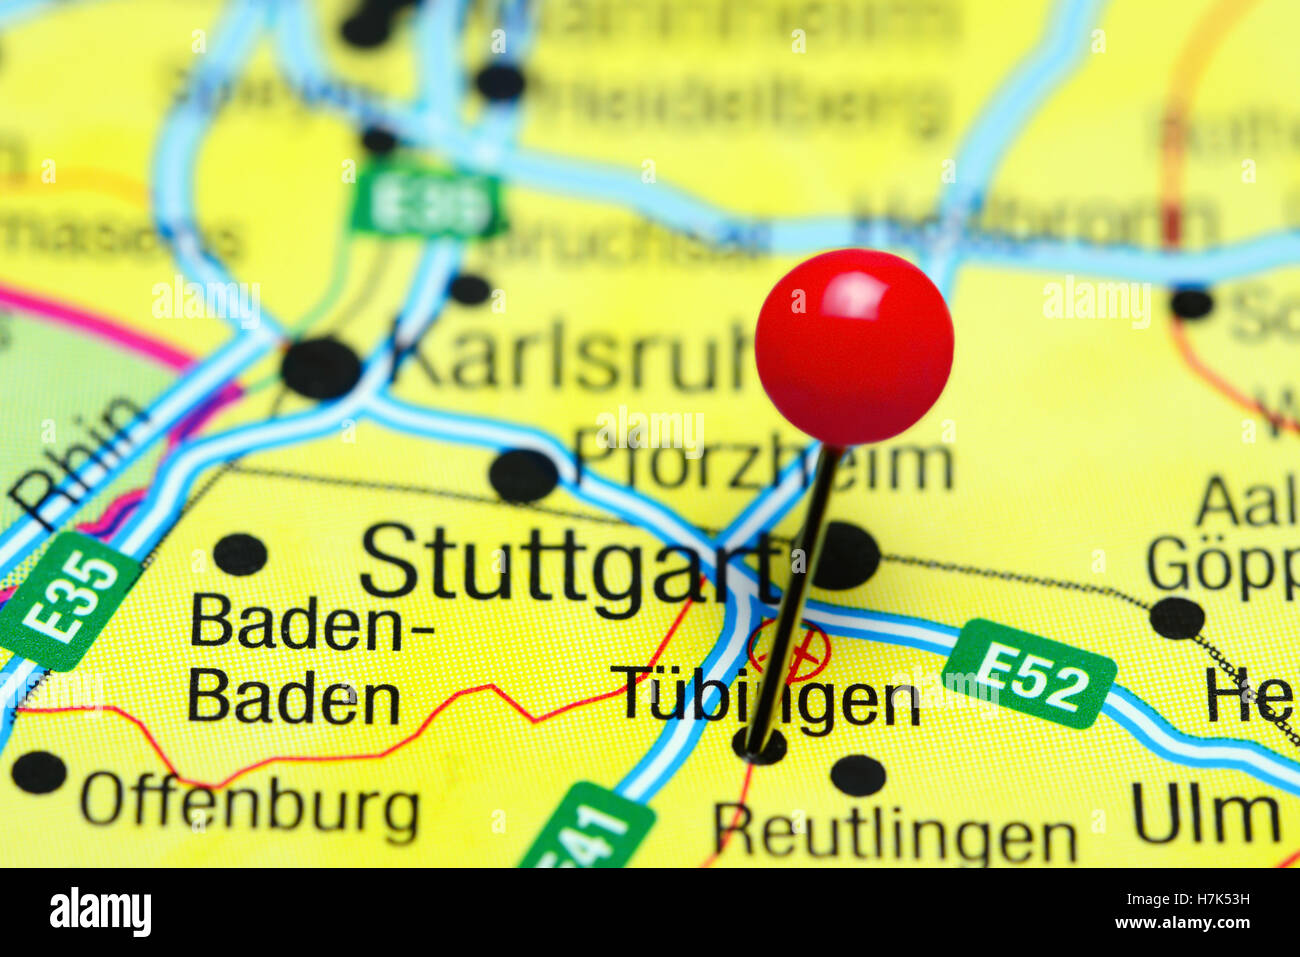 tubingen pinned on a map of germany